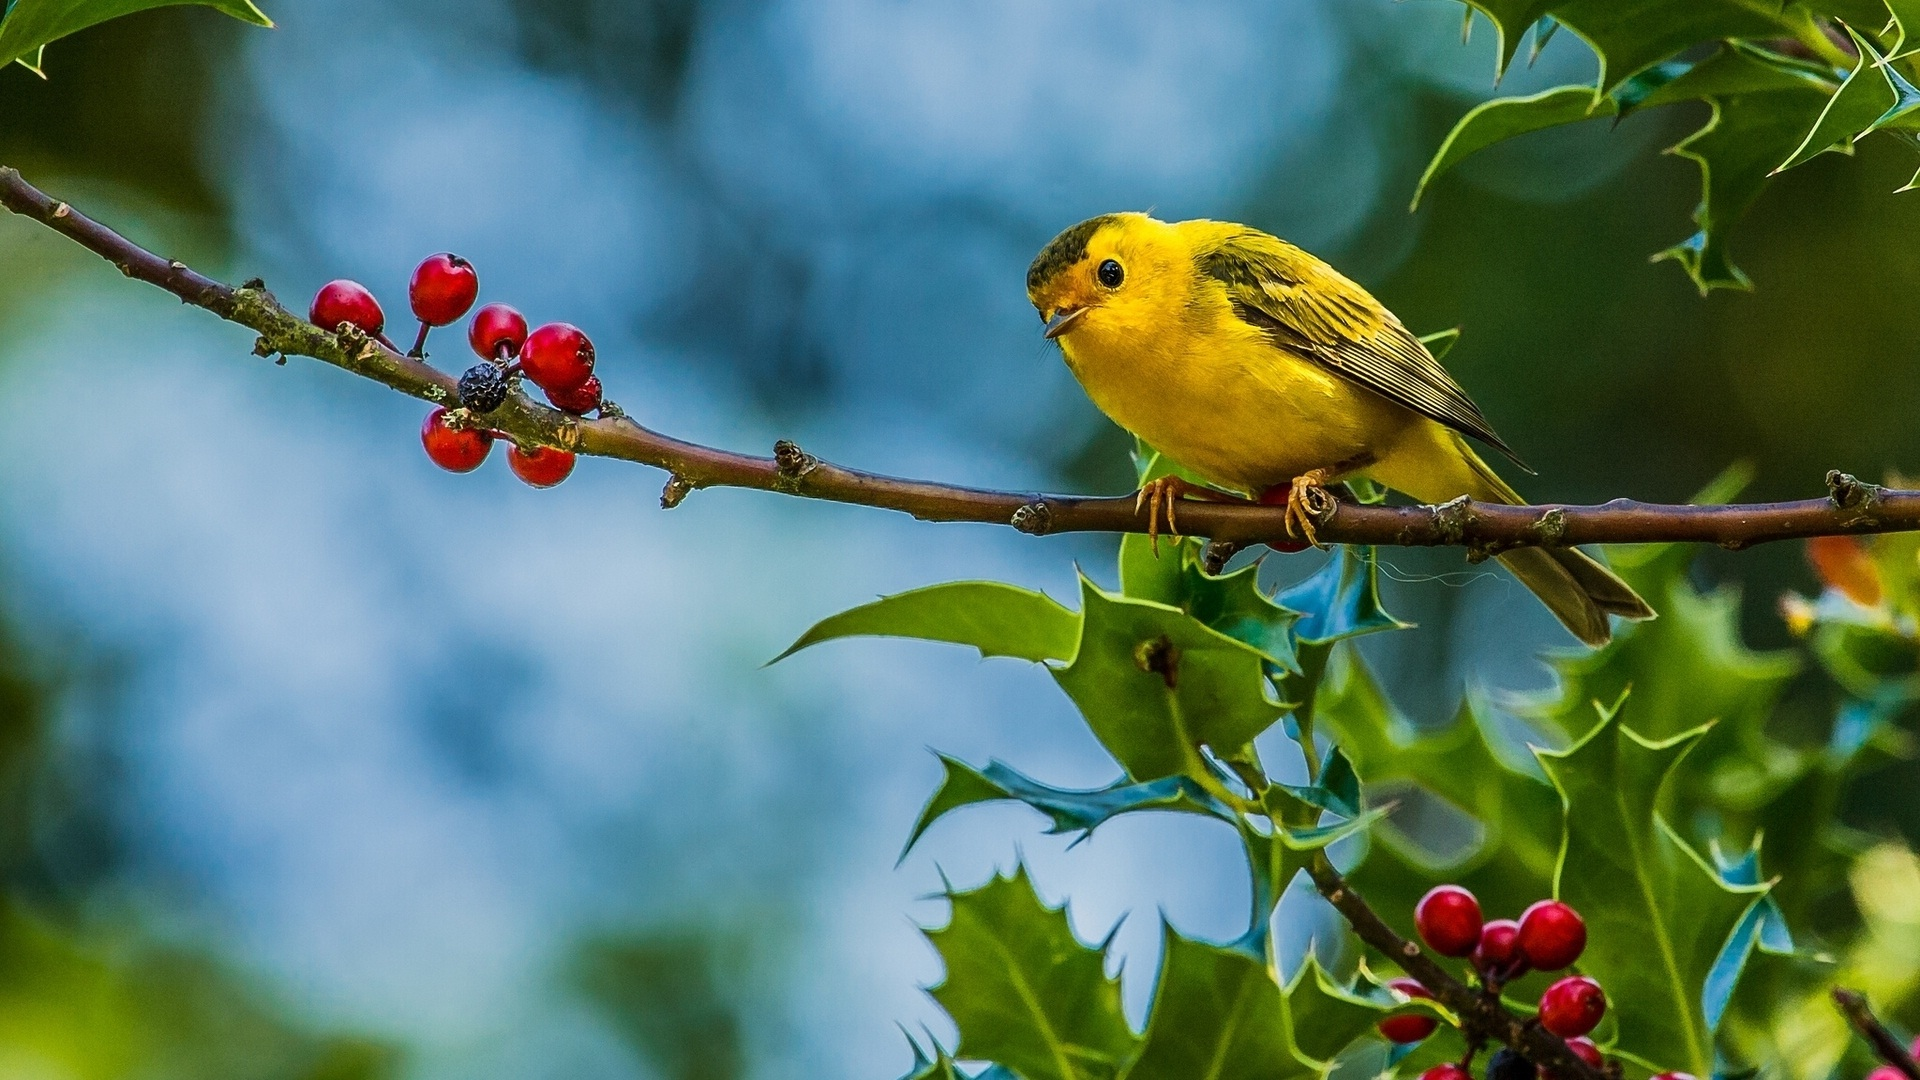 Yellow sparrow bird on red berry tree HD Wallpapers Rocks 1920x1080